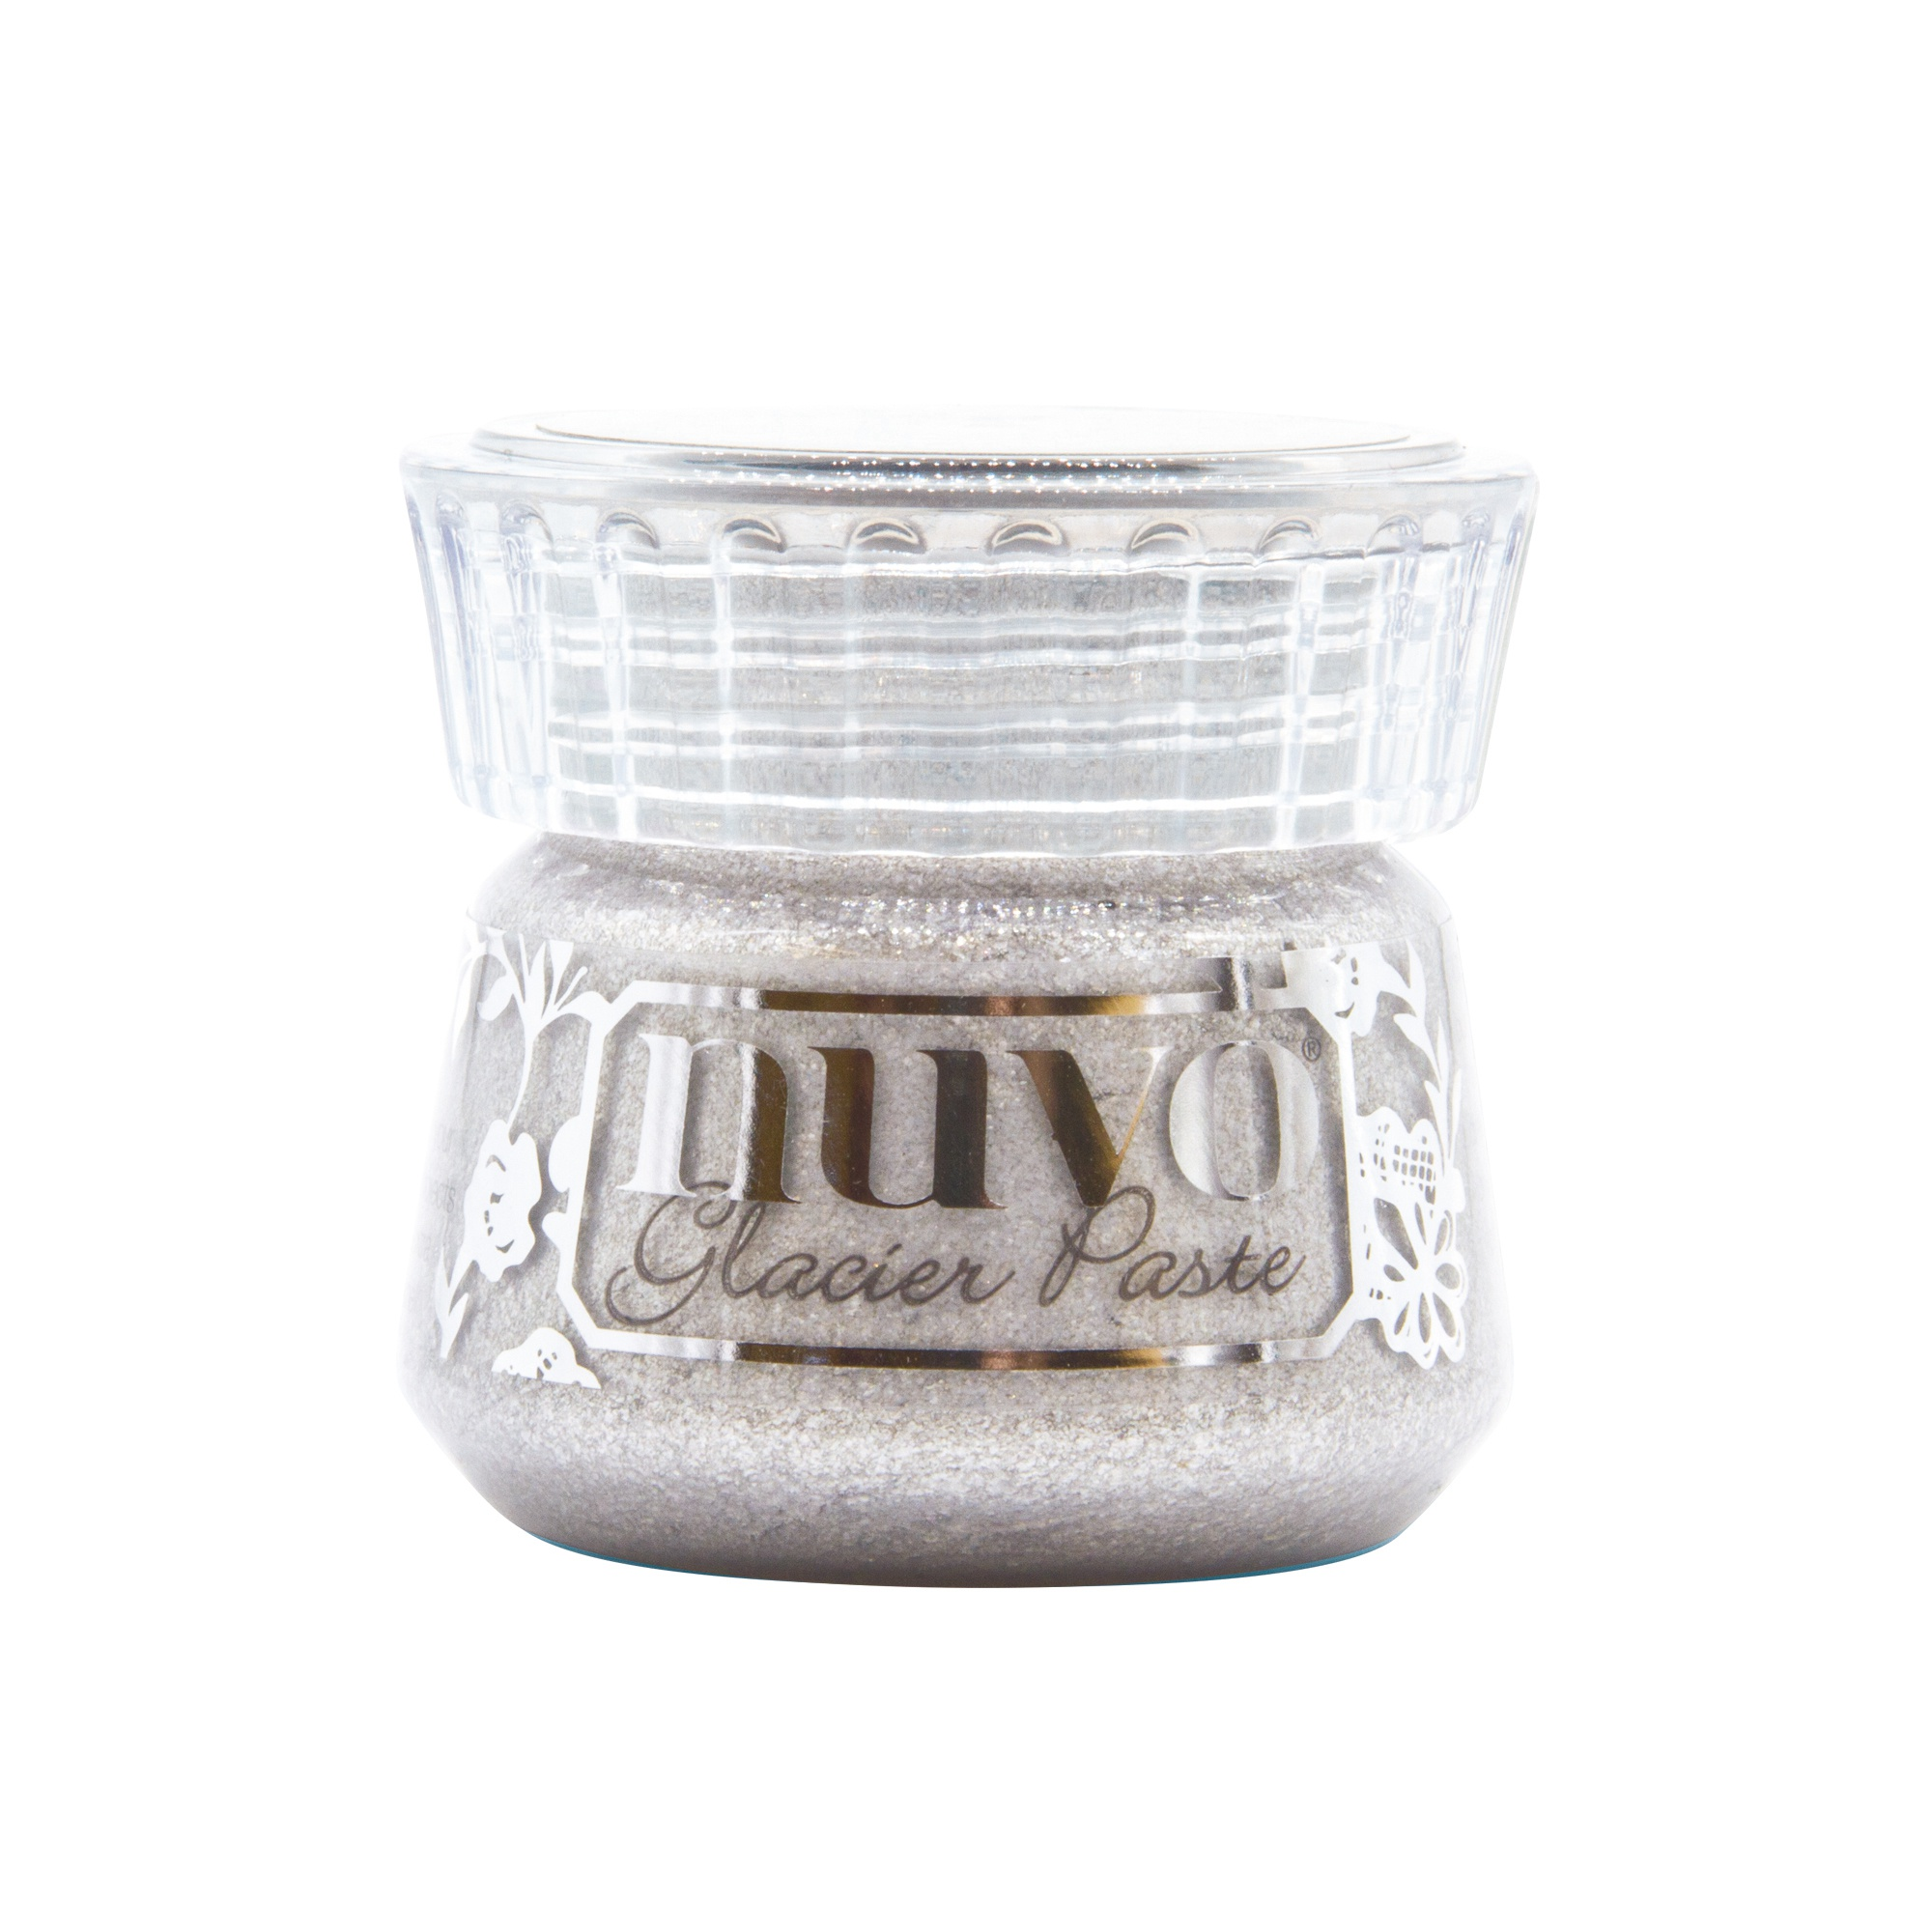 Nuvo Glacier Paste 1.6oz-Quicksilver